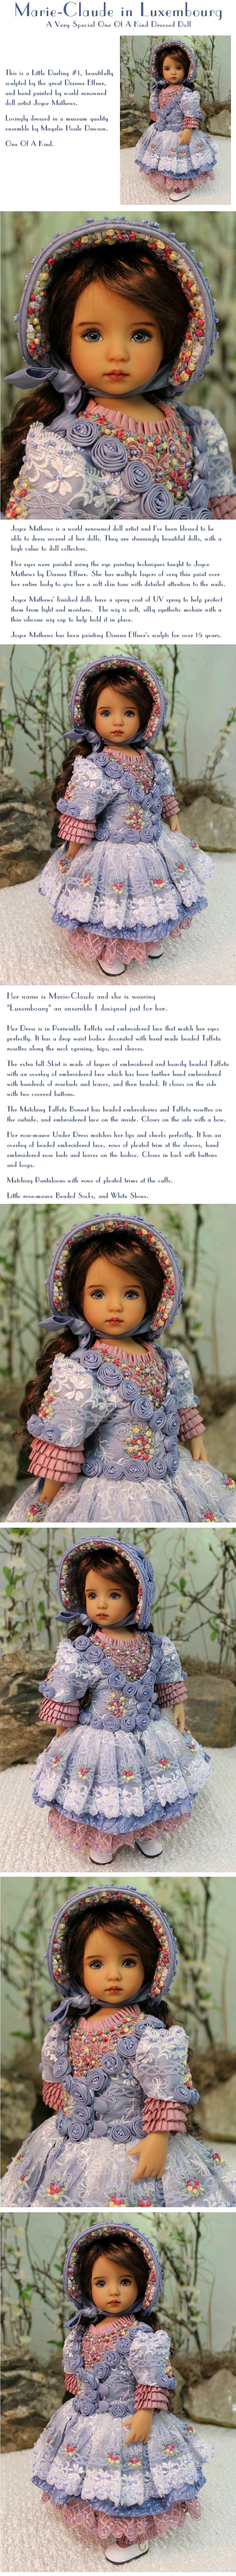 Marie-Claude in Luxembourg - a One Of A Kind Dressed Doll by MHD Designs